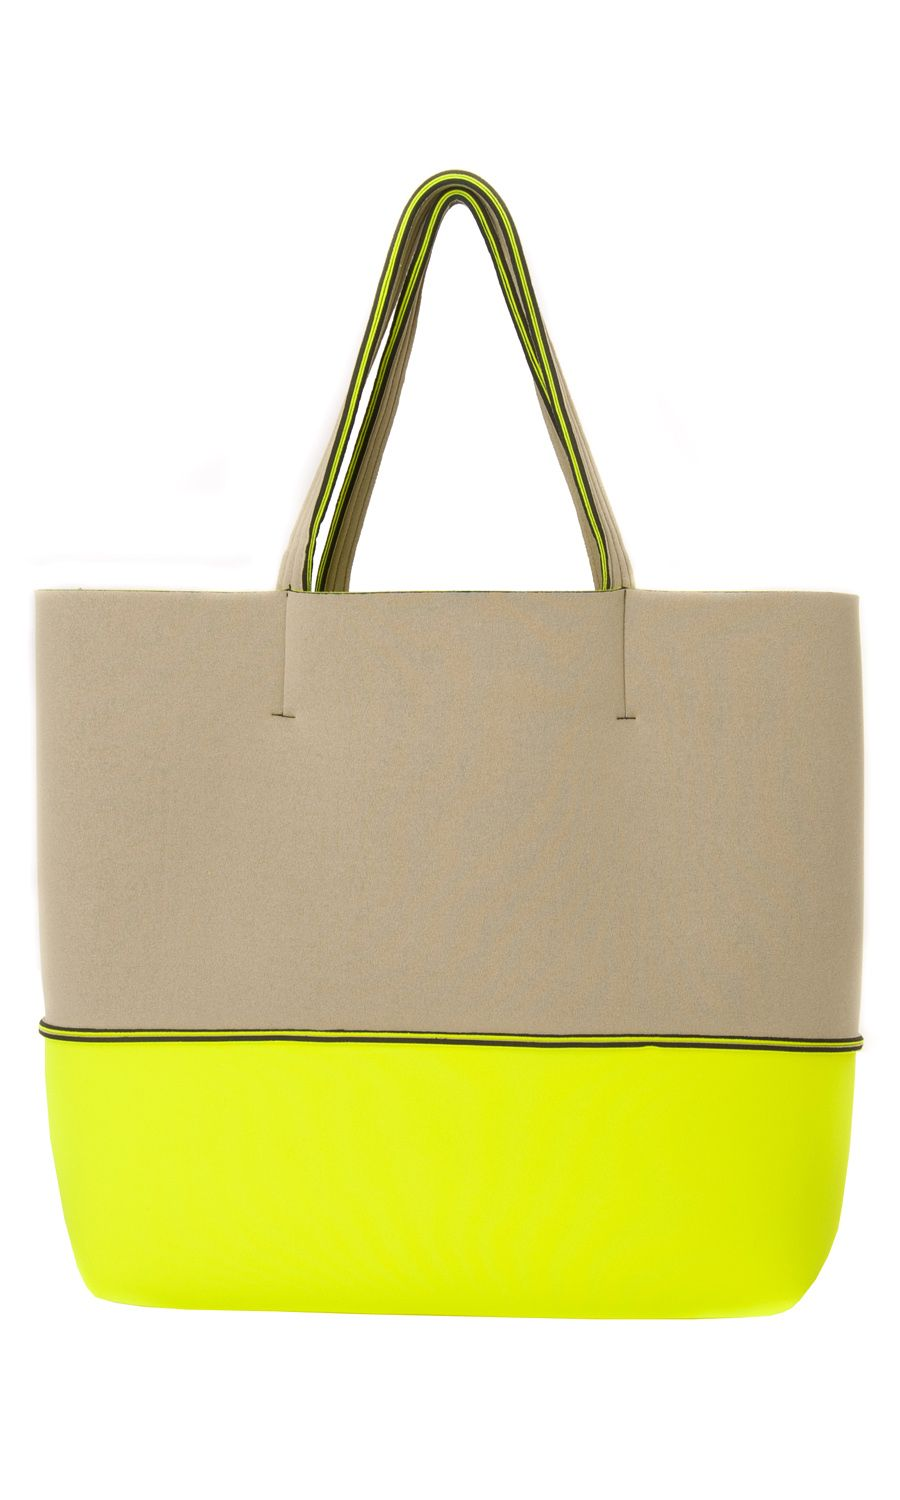 Leghilà Bi-color neoprene Beach Bag - Yellow & Beige #bag ...